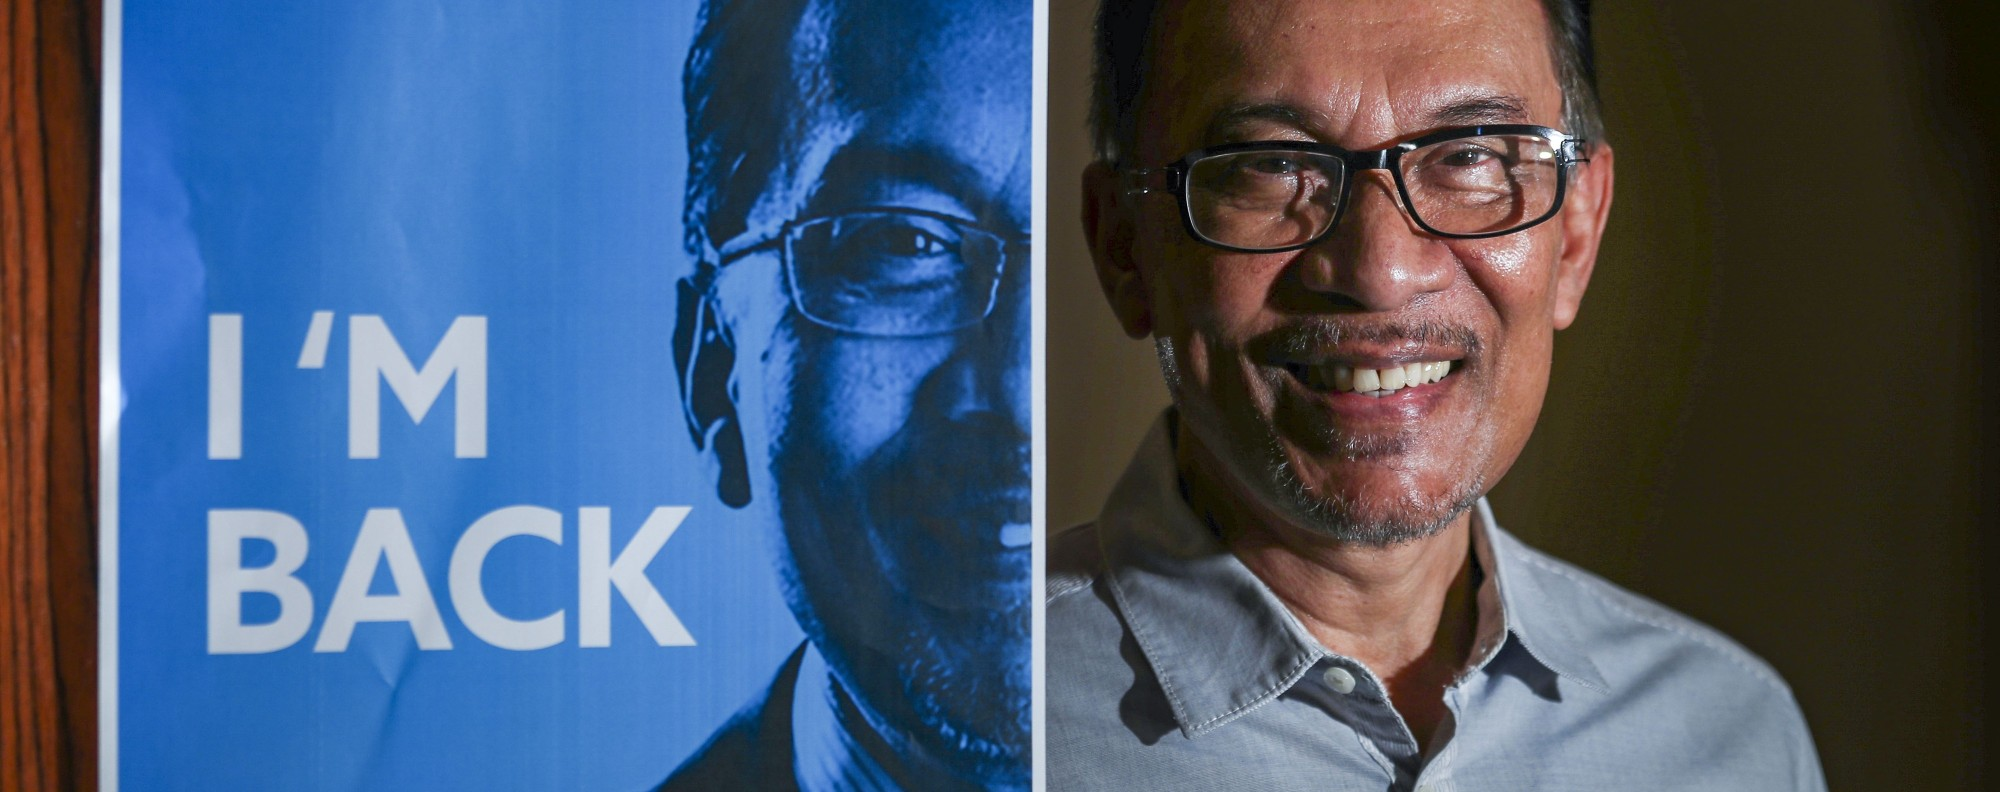 He's back: Anwar Ibrahim. Photo: Nora Tam